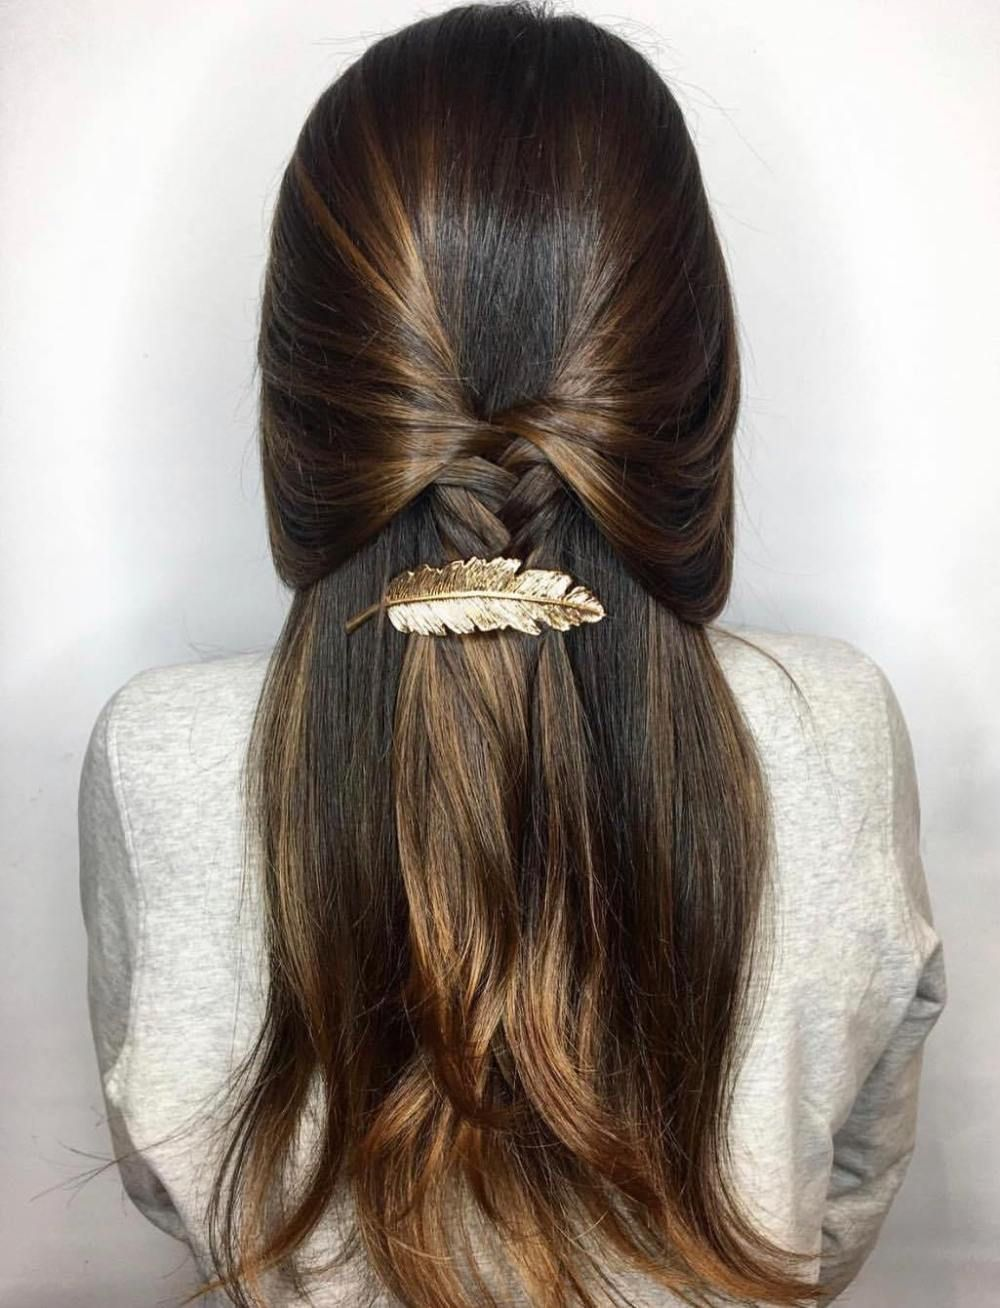 30 Best Hairstyles And Haircuts For Long Straight Hair Top Hair Straighteners Mid Length Straight Hair Straight Hairstyles